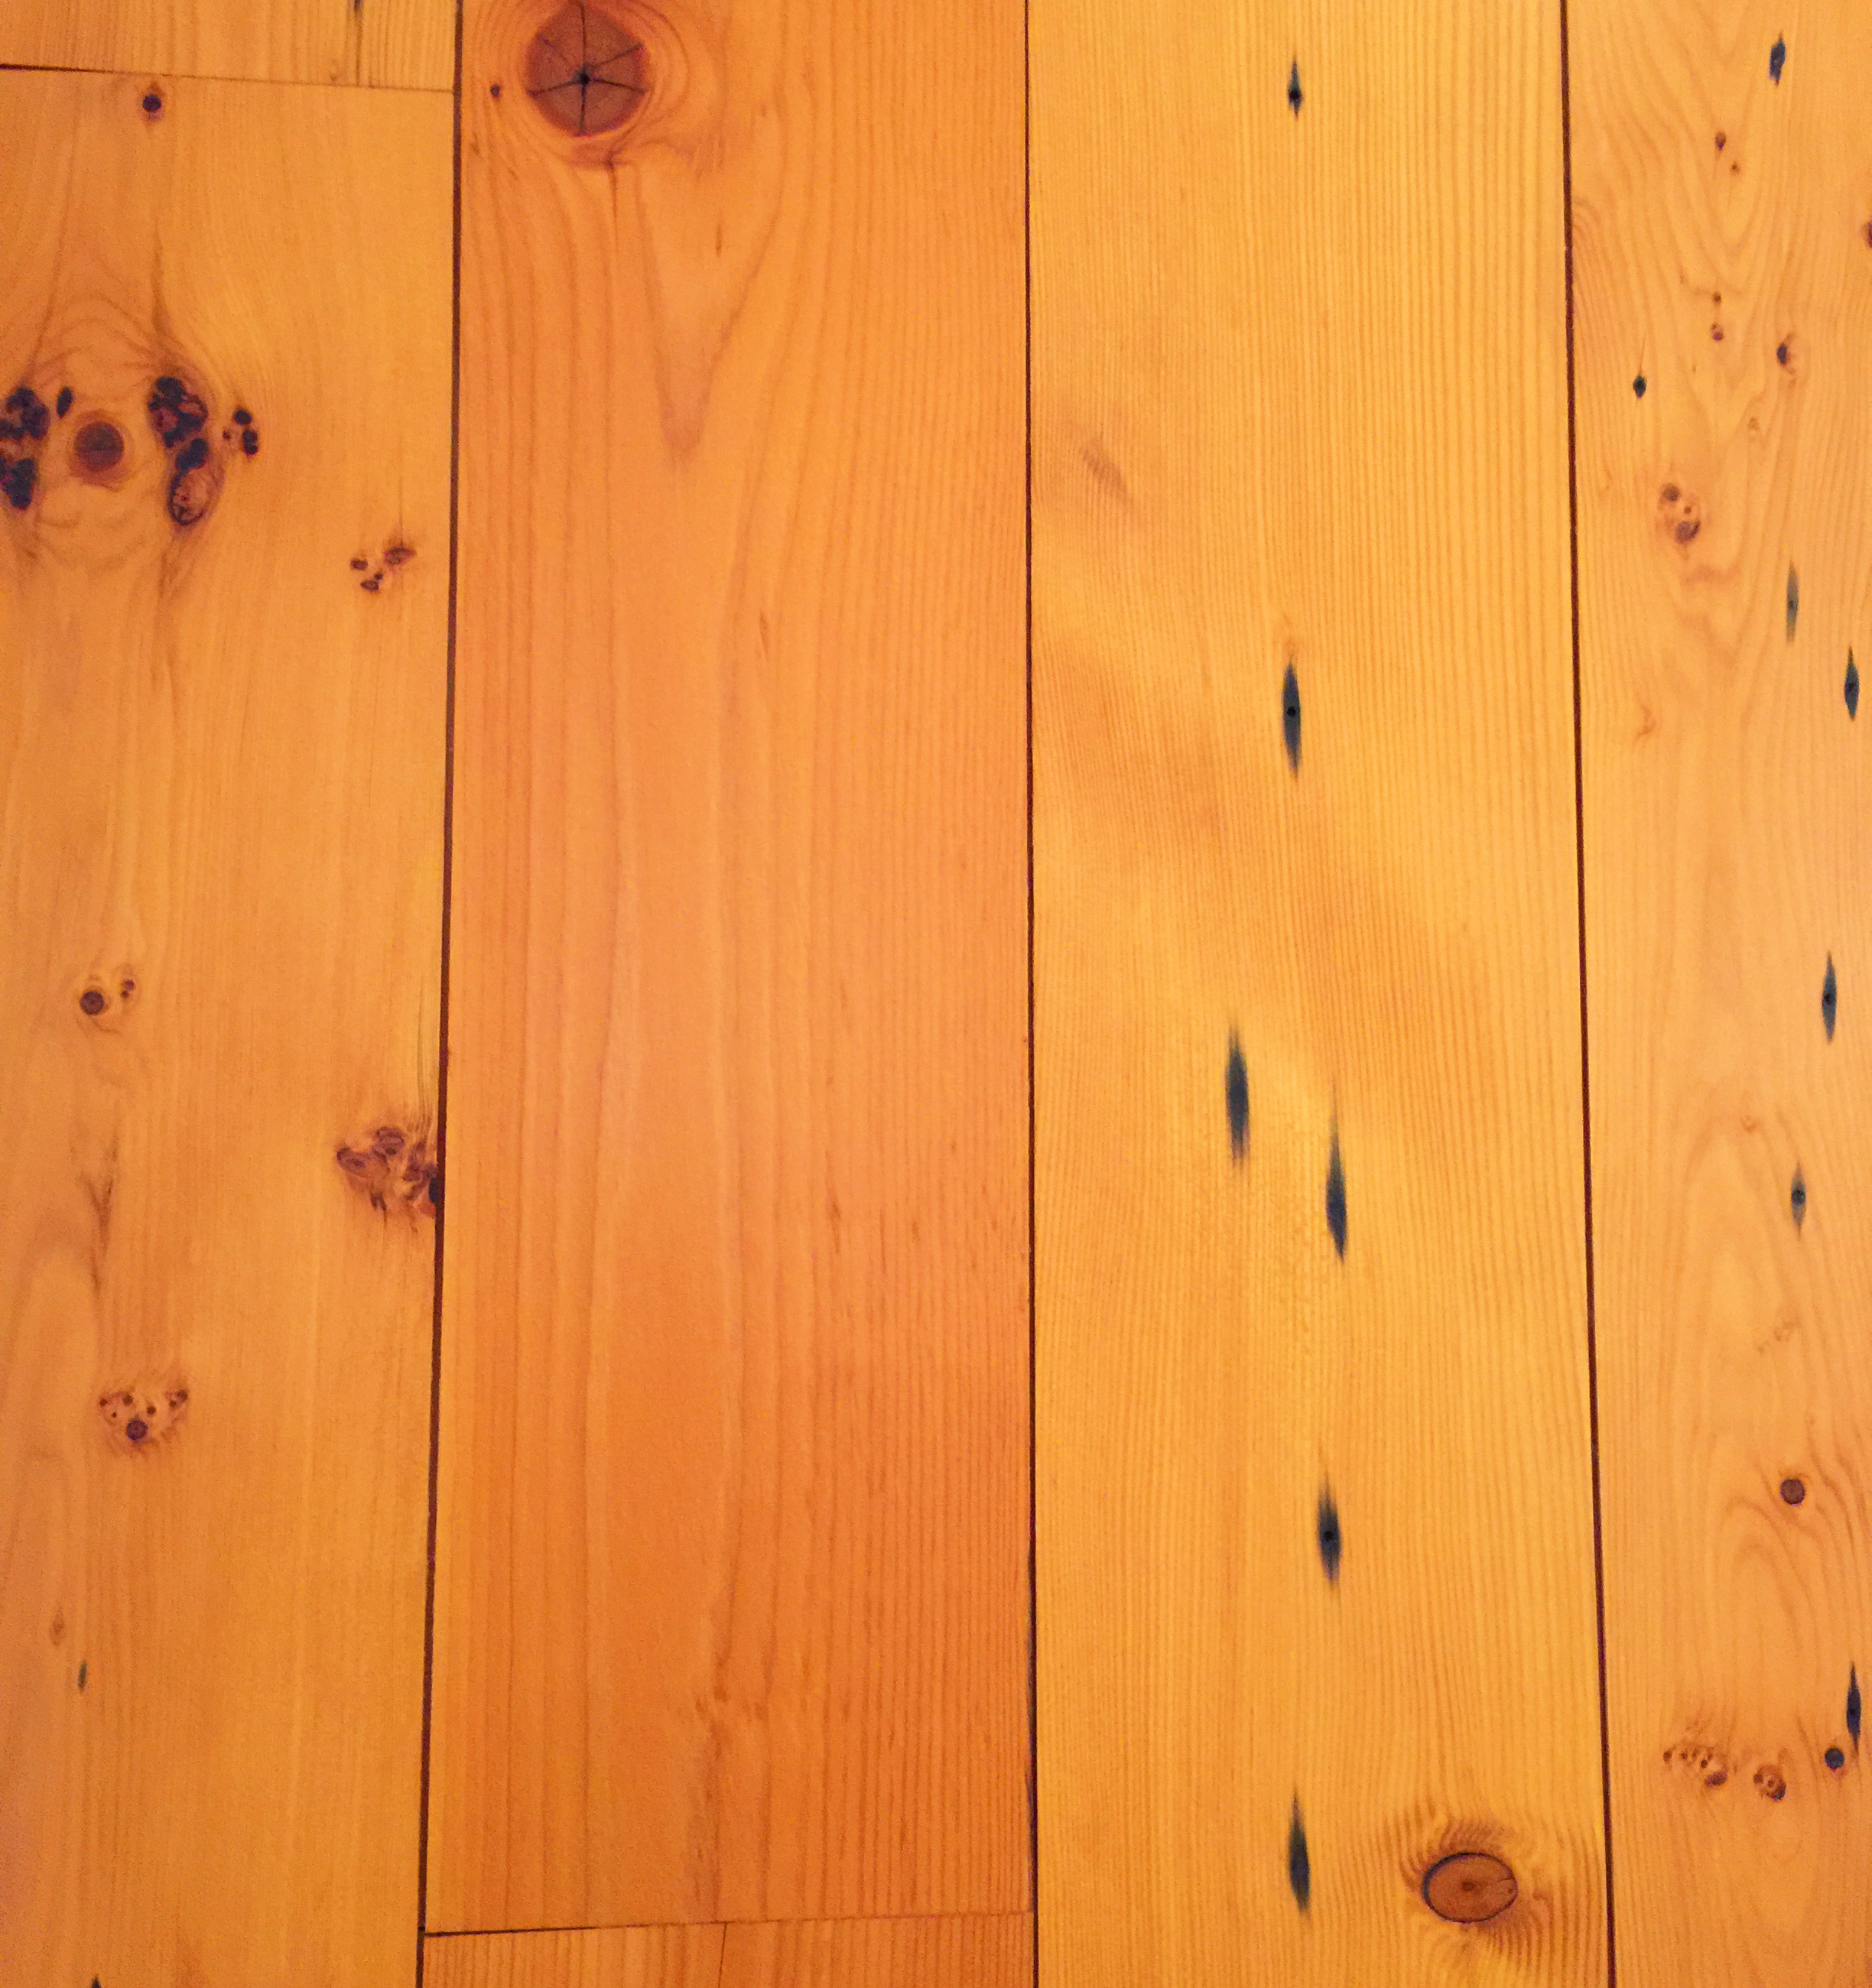 Reclaimed Douglas Fir Flooring with Tung Oil Finish